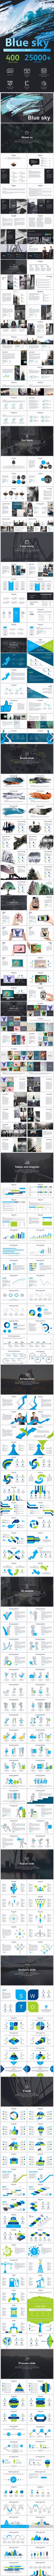 Blue sky Powerpoint template - Business PowerPoint Templates Download here: https://graphicriver.net/item/blue-sky-powerpoint-template/19763734?ref=classicdesignp